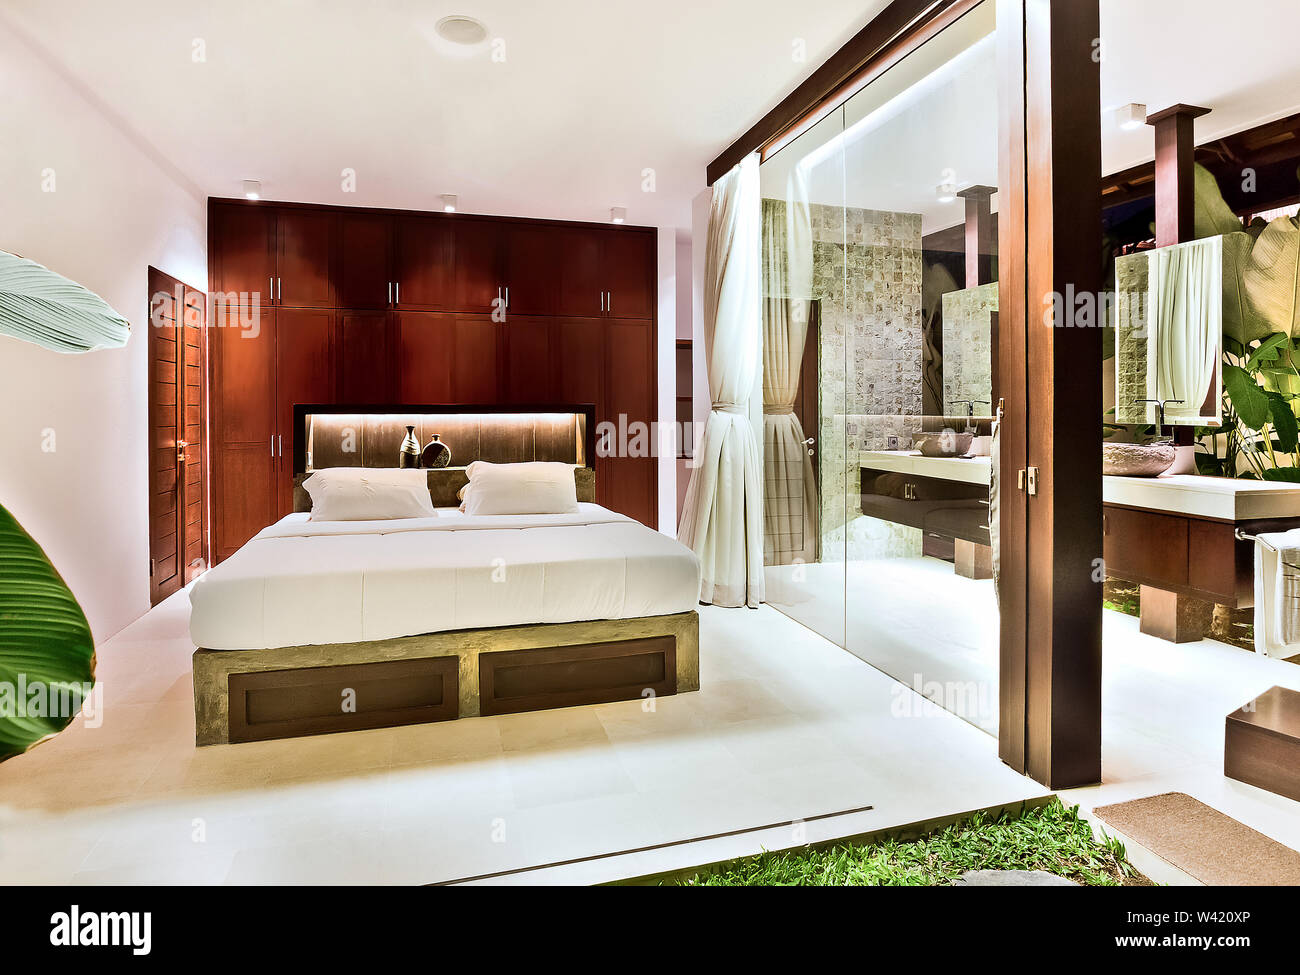 Luxury bedroom with the natural decor design including lawn